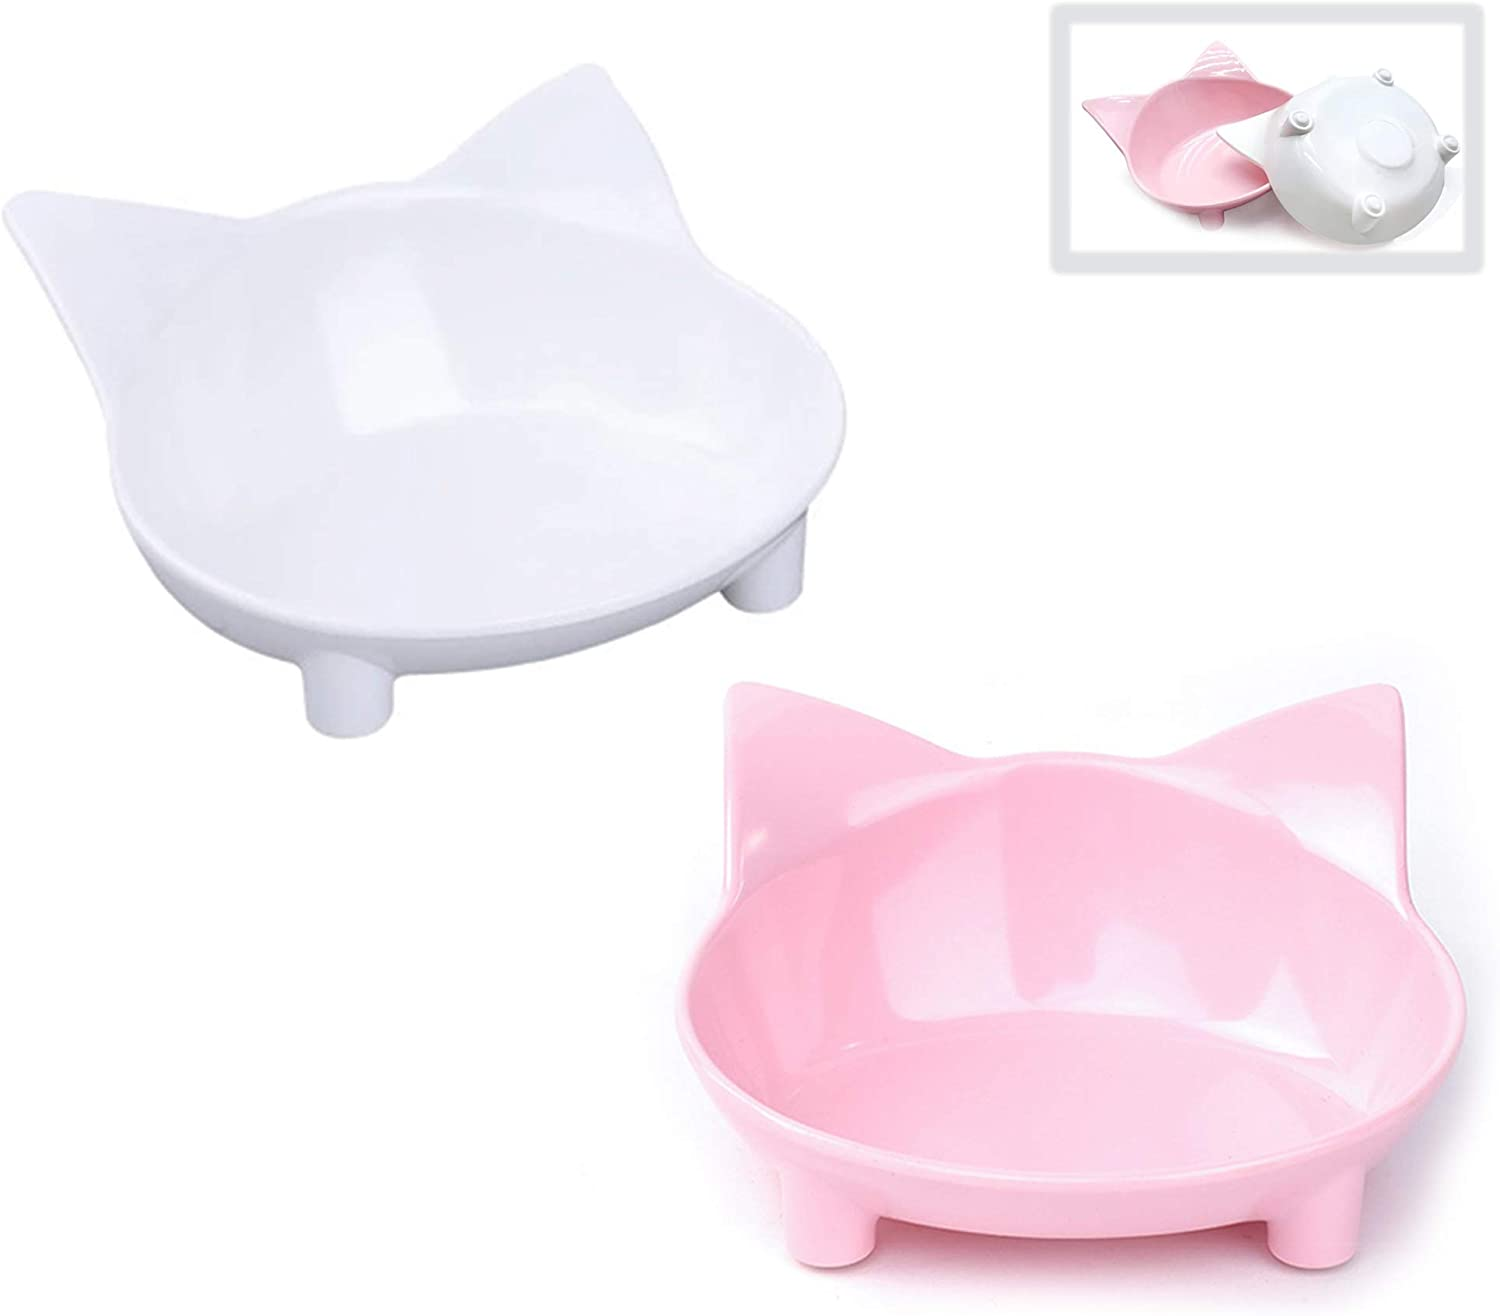 choemore Cat Bowl Cat Food Bowls Non Slip Wide Shallow Cat Dish for Relief of Whisker Fatigue(Safe Food-Grade Material)